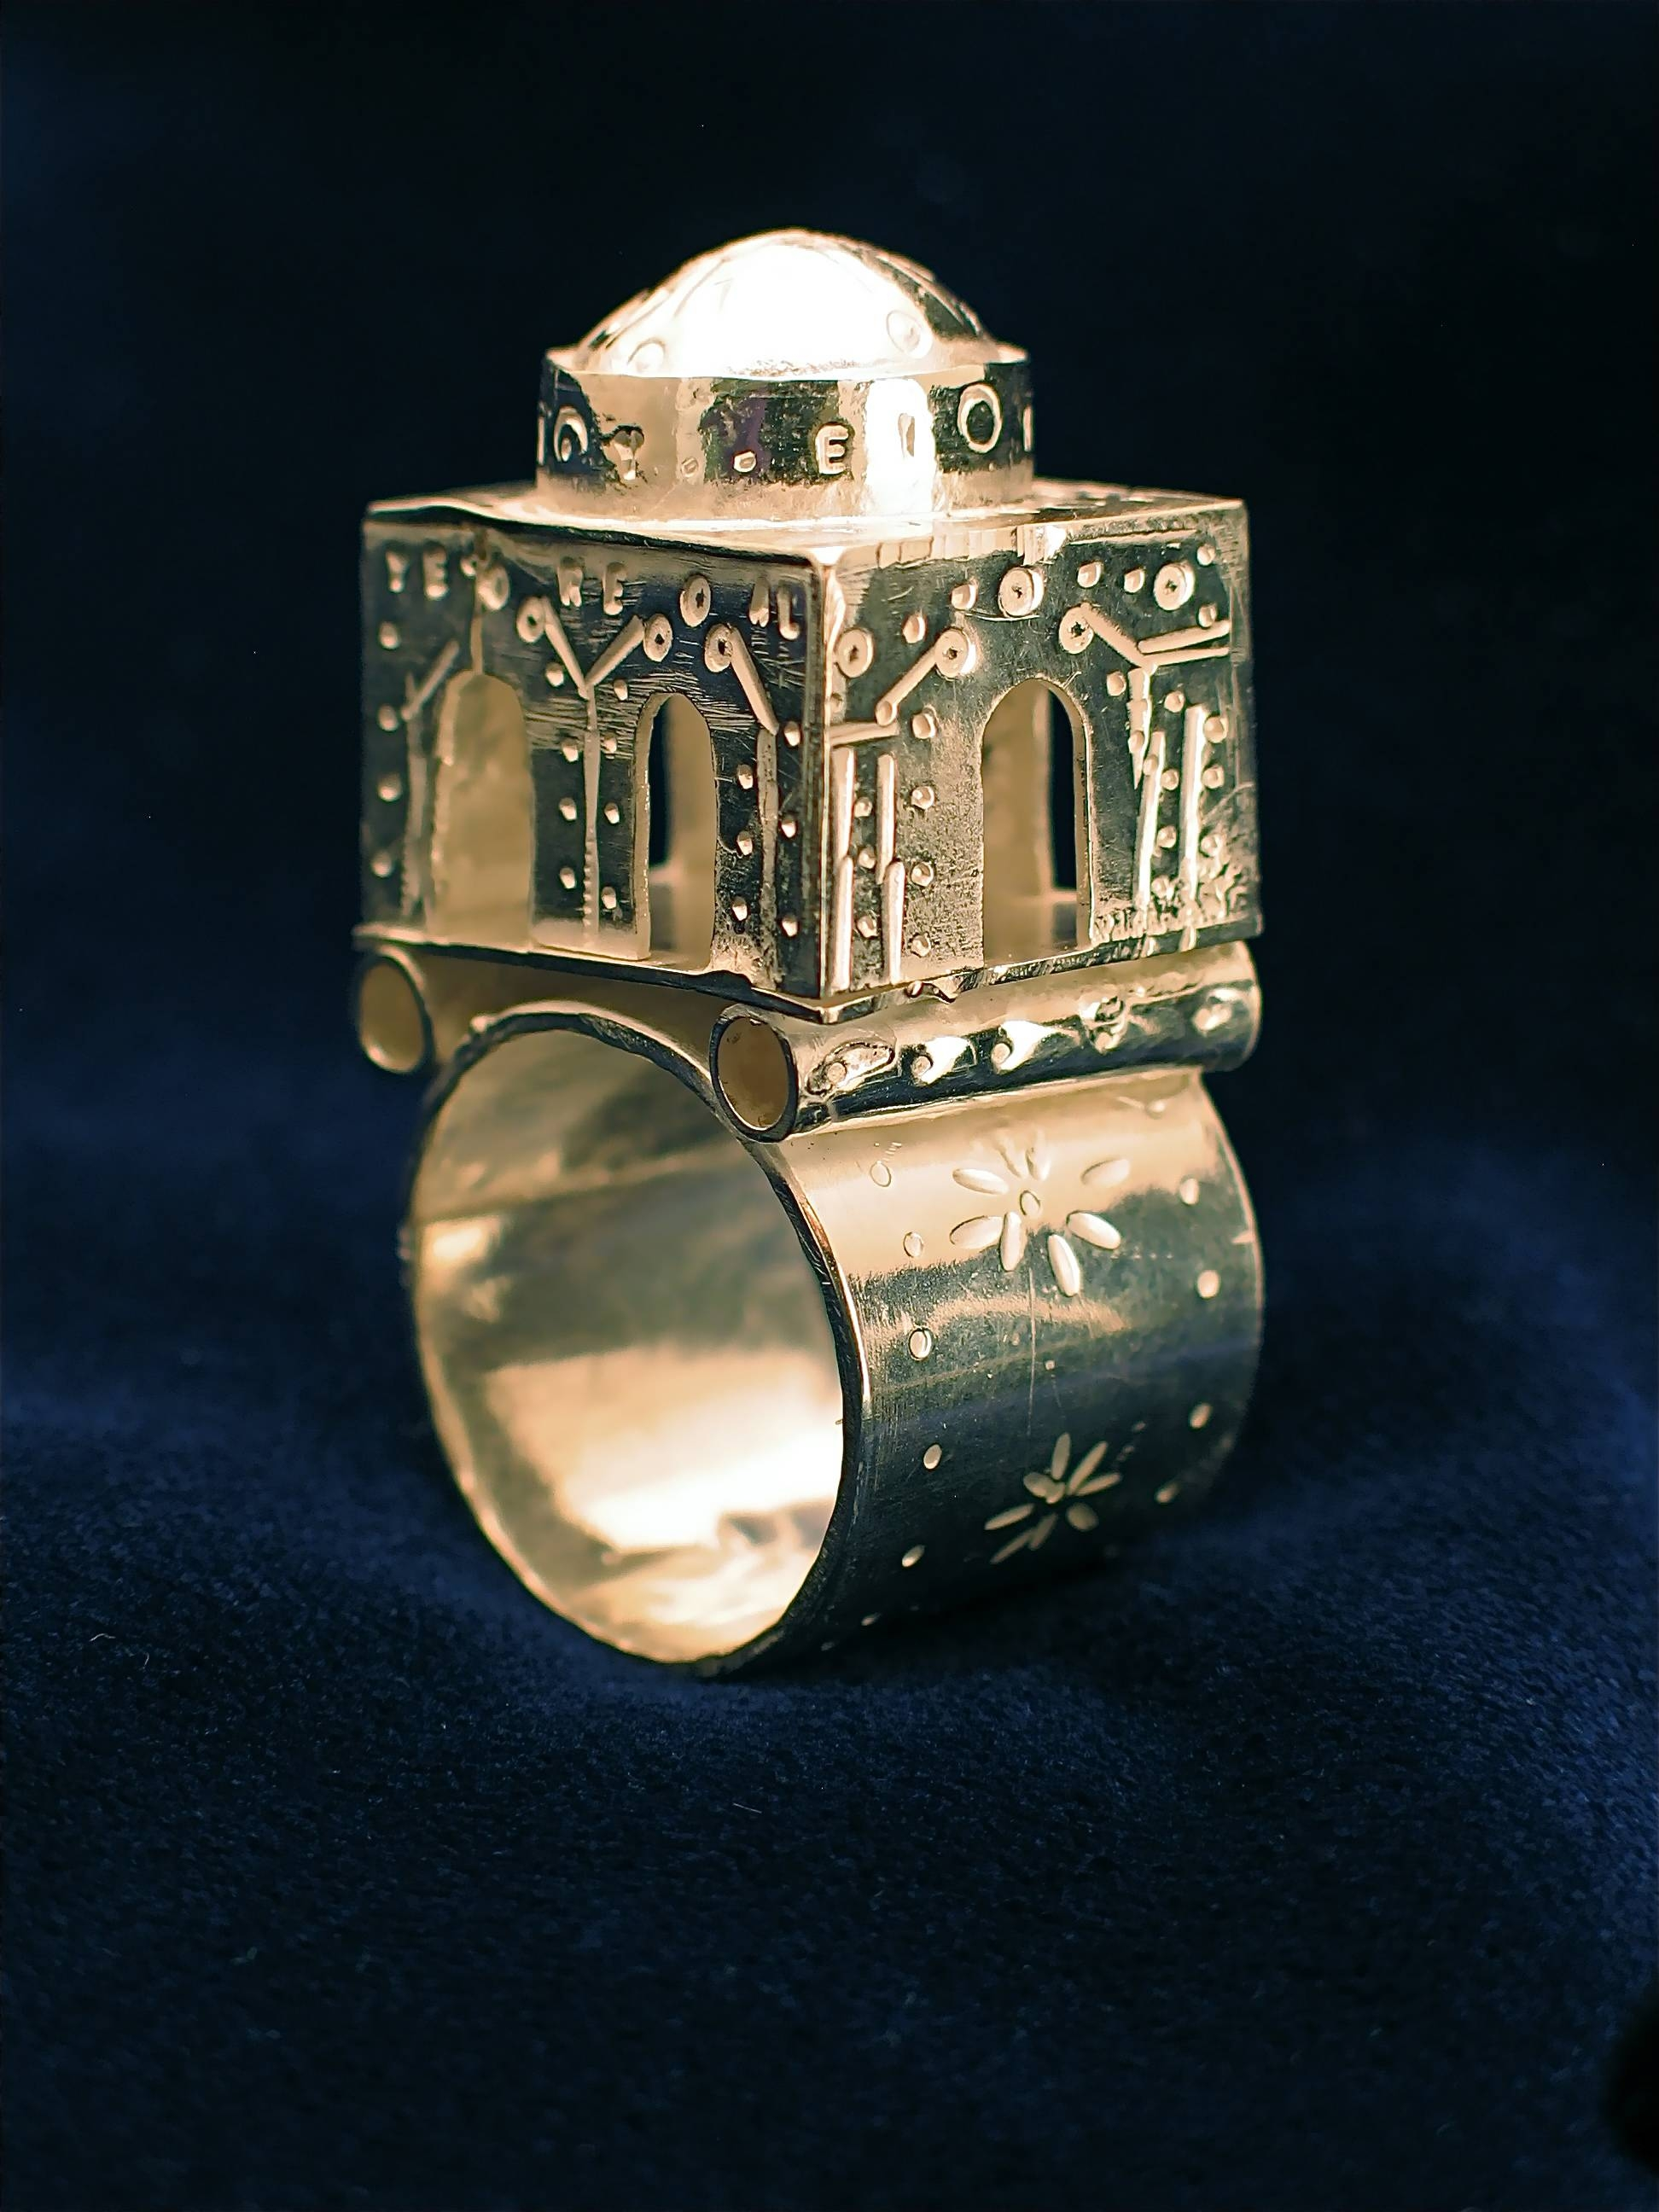 Jewish Wedding Ring | Wedding Corners Within Jewish Wedding Bands (View 8 of 15)